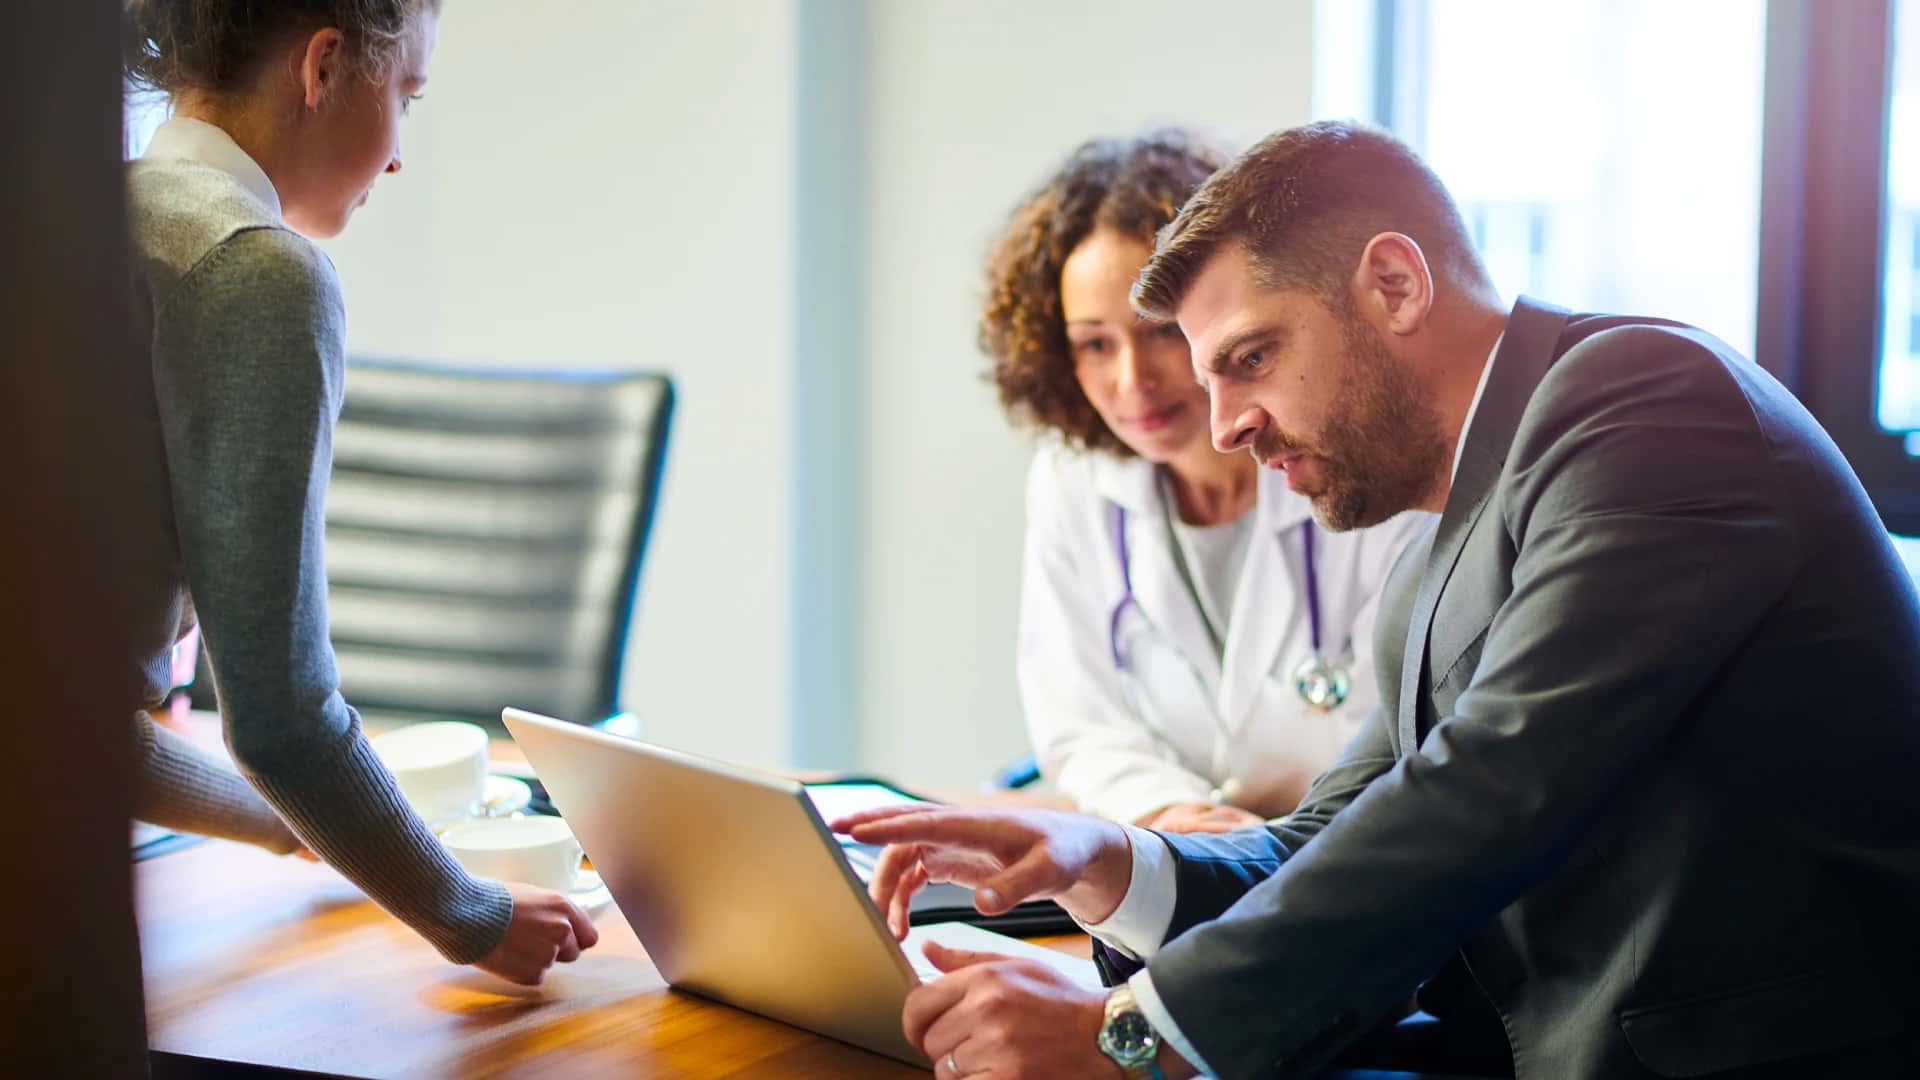 A person in a business suite reviewing IT files on a laptop with a person in a lab coat and stethoscope